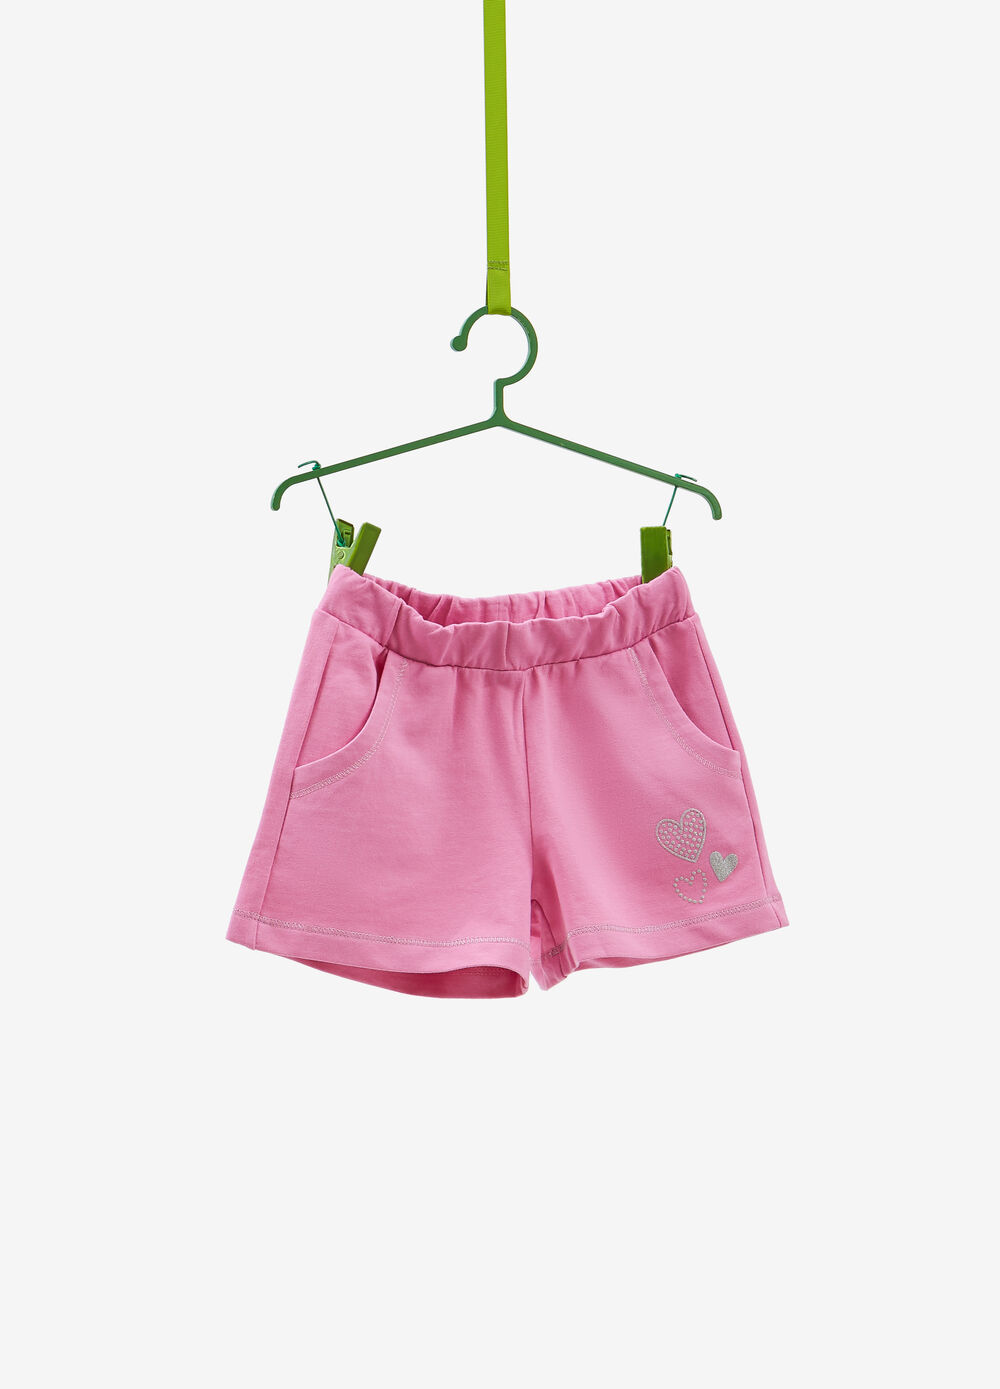 100% cotton shorts with glitter print